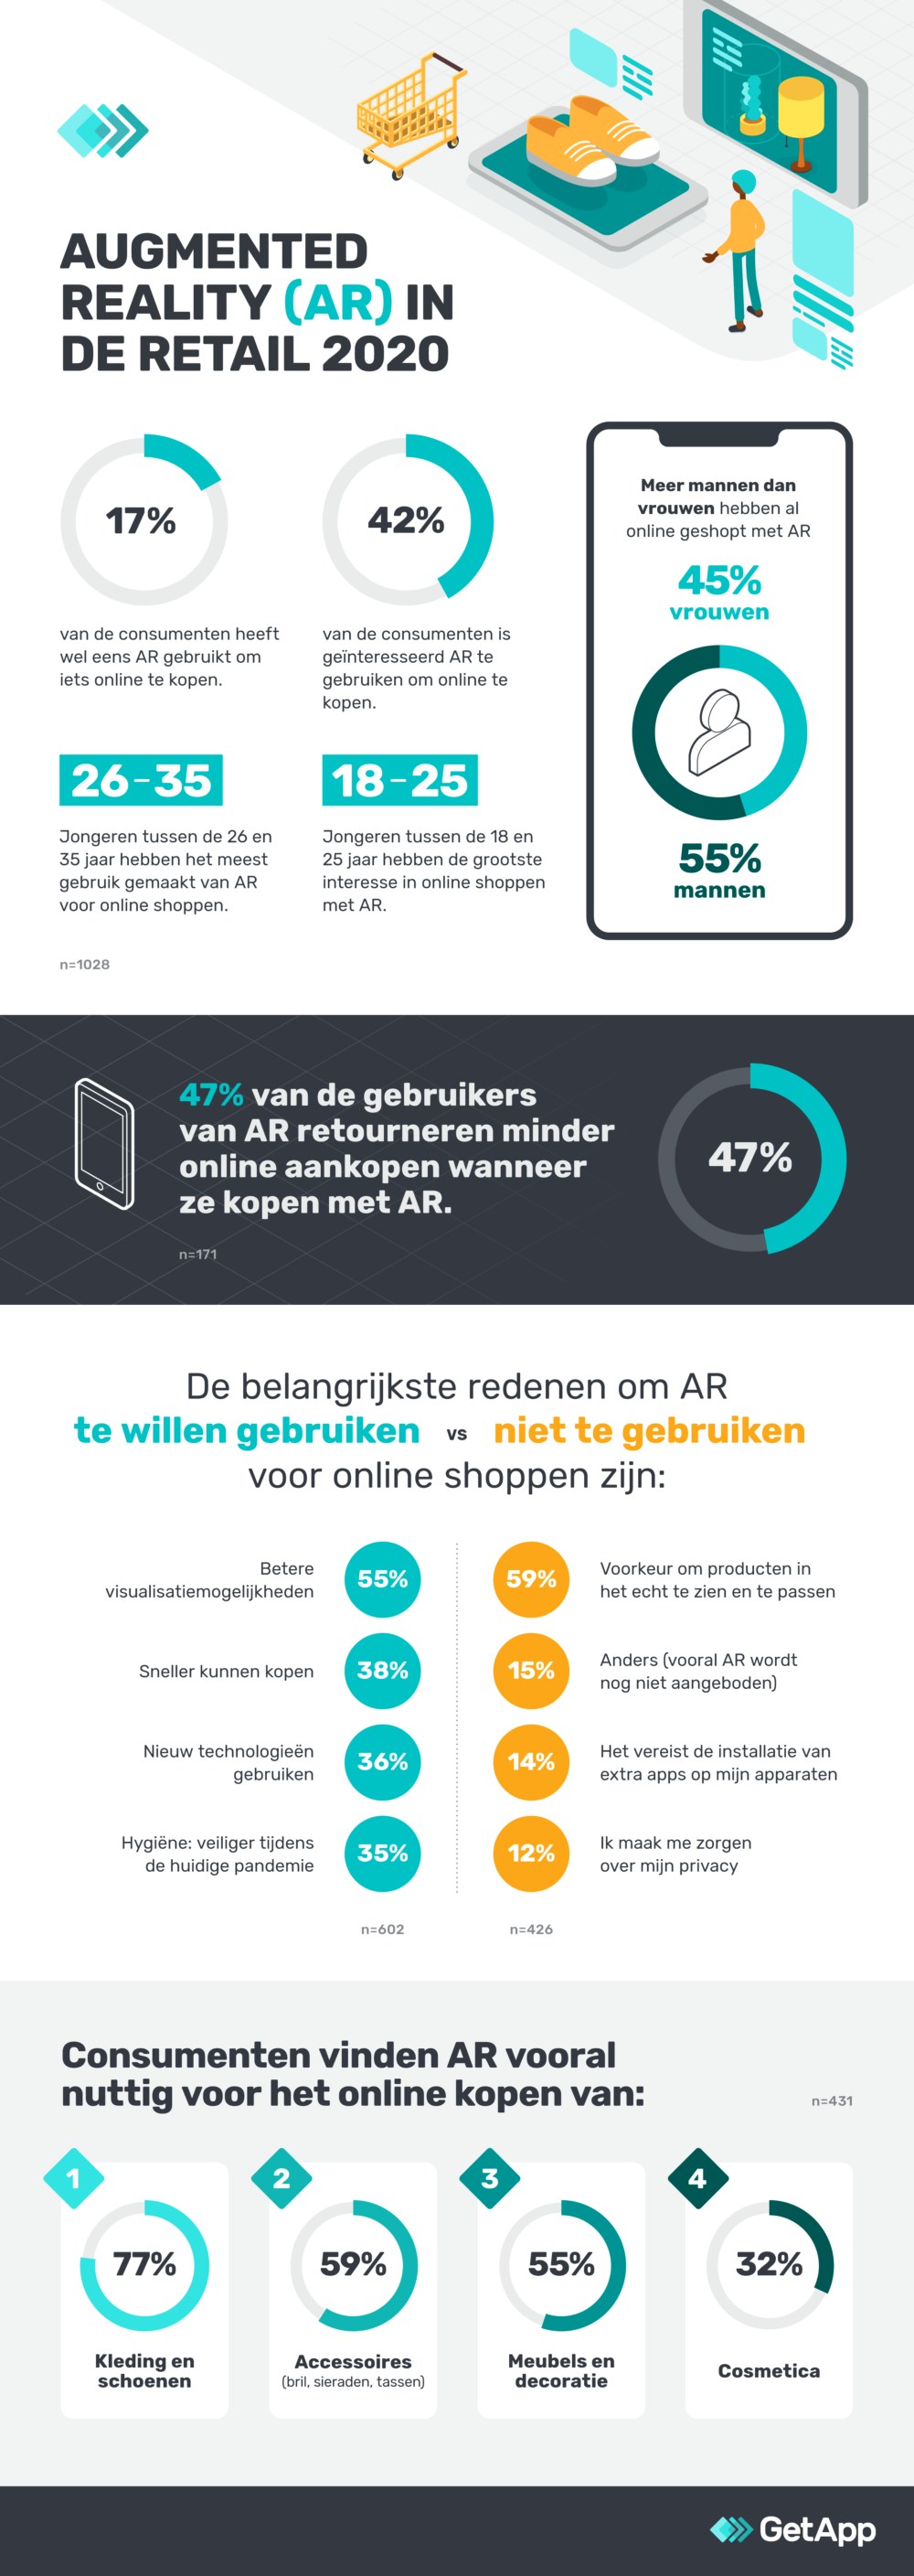 Ar in retail 2020